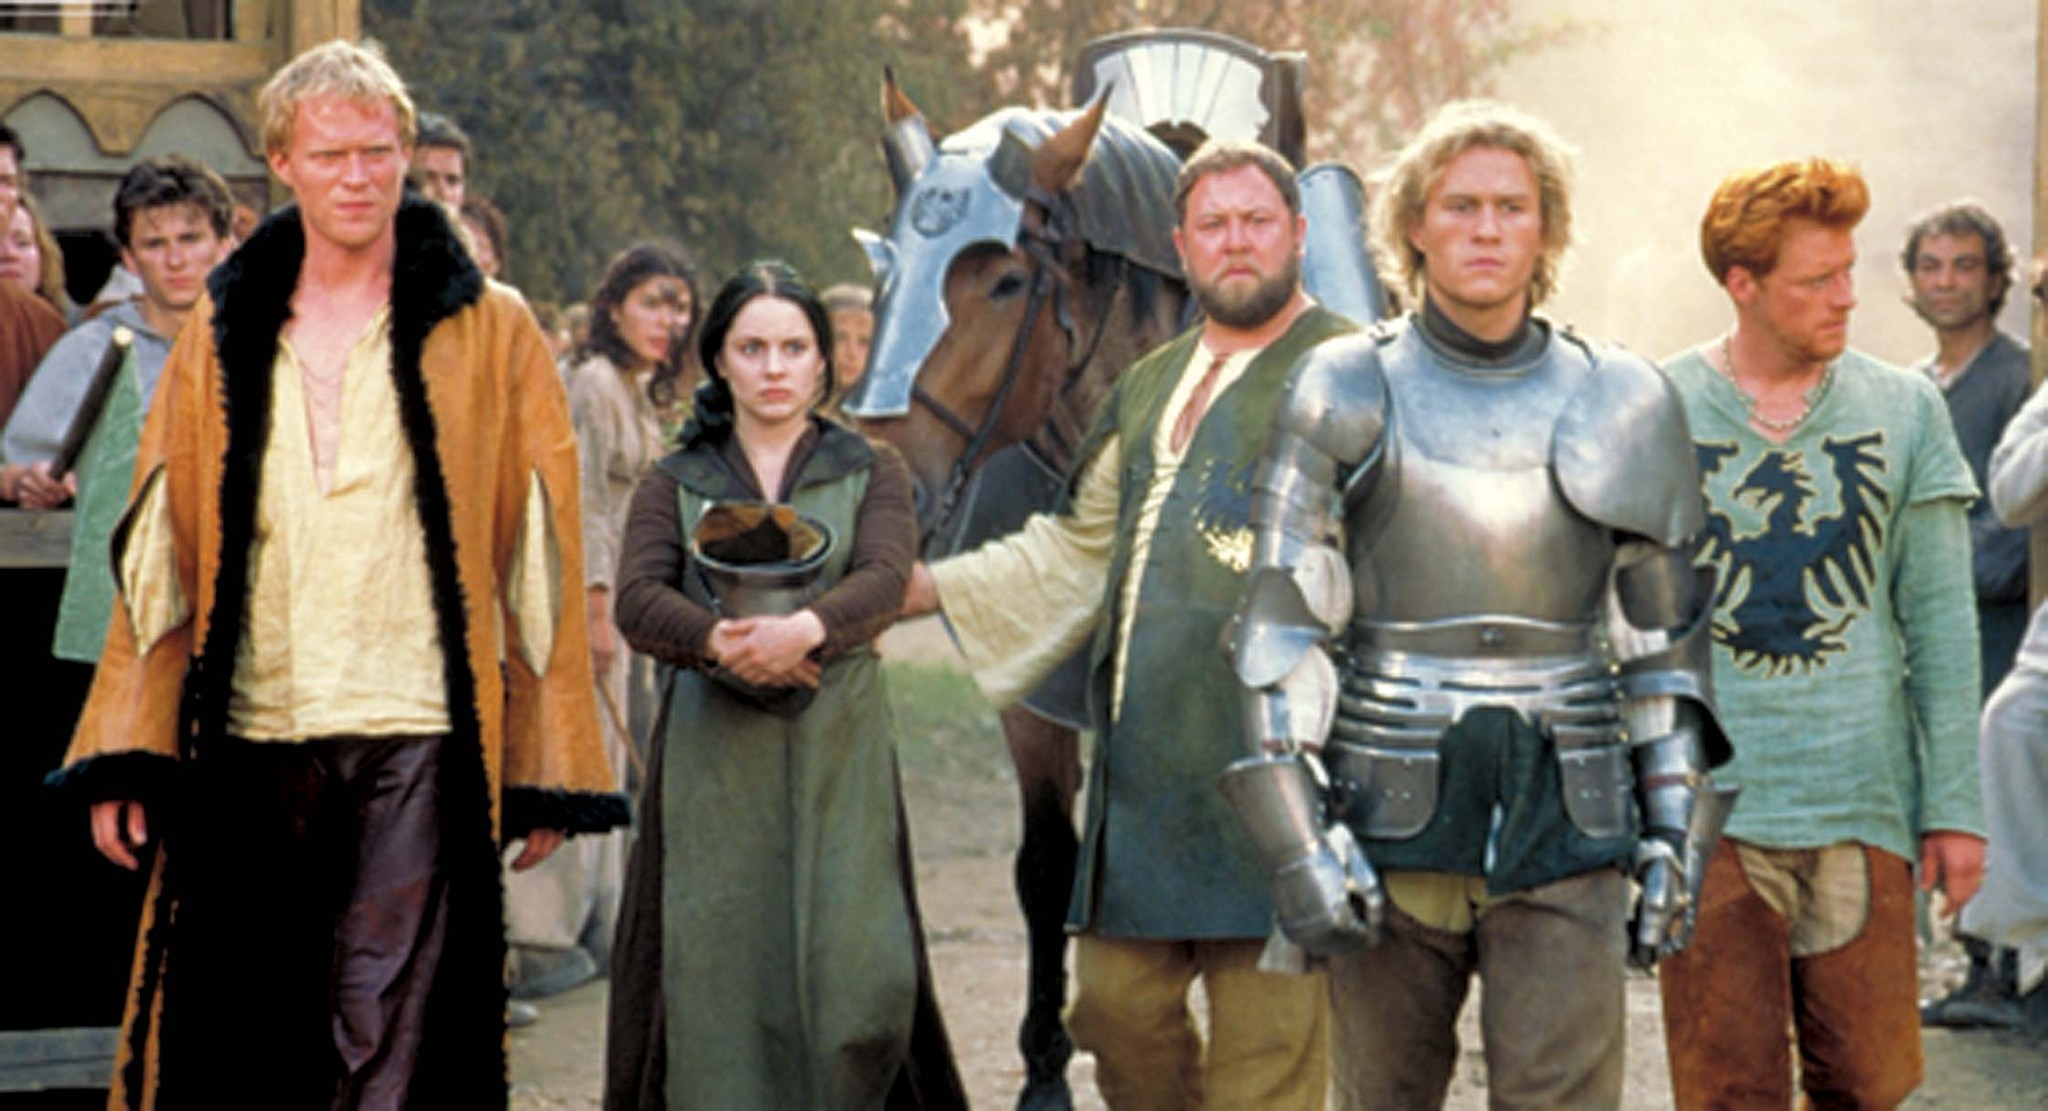 a knights tale Paul bettany and alan tudyk in a knight's tale (2001) apollonia kotero at an  event for a knight's tale (2001) ben chaplin at an event for a knight's tale (2001 ).